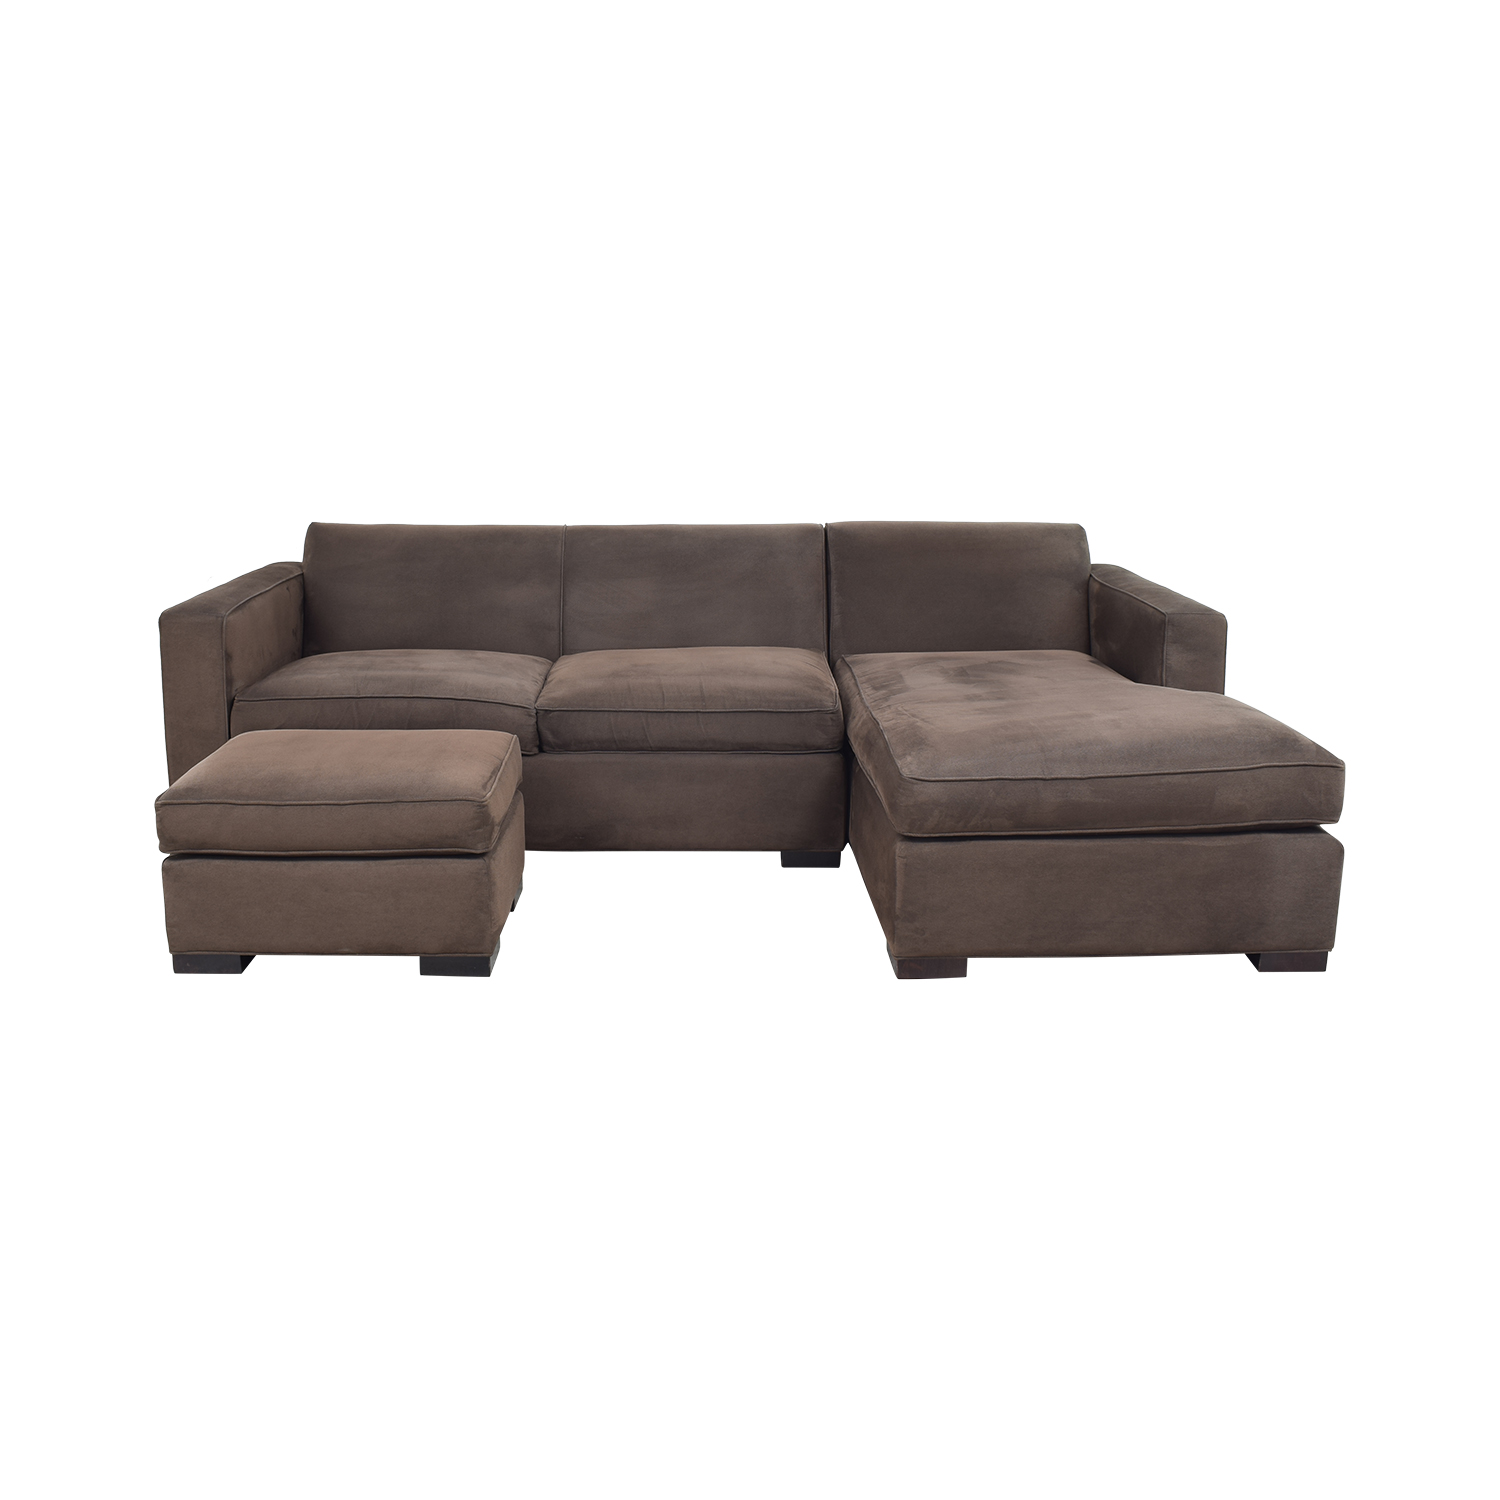 Room & Board Room & Board Ian Sofa and Ottoman pa